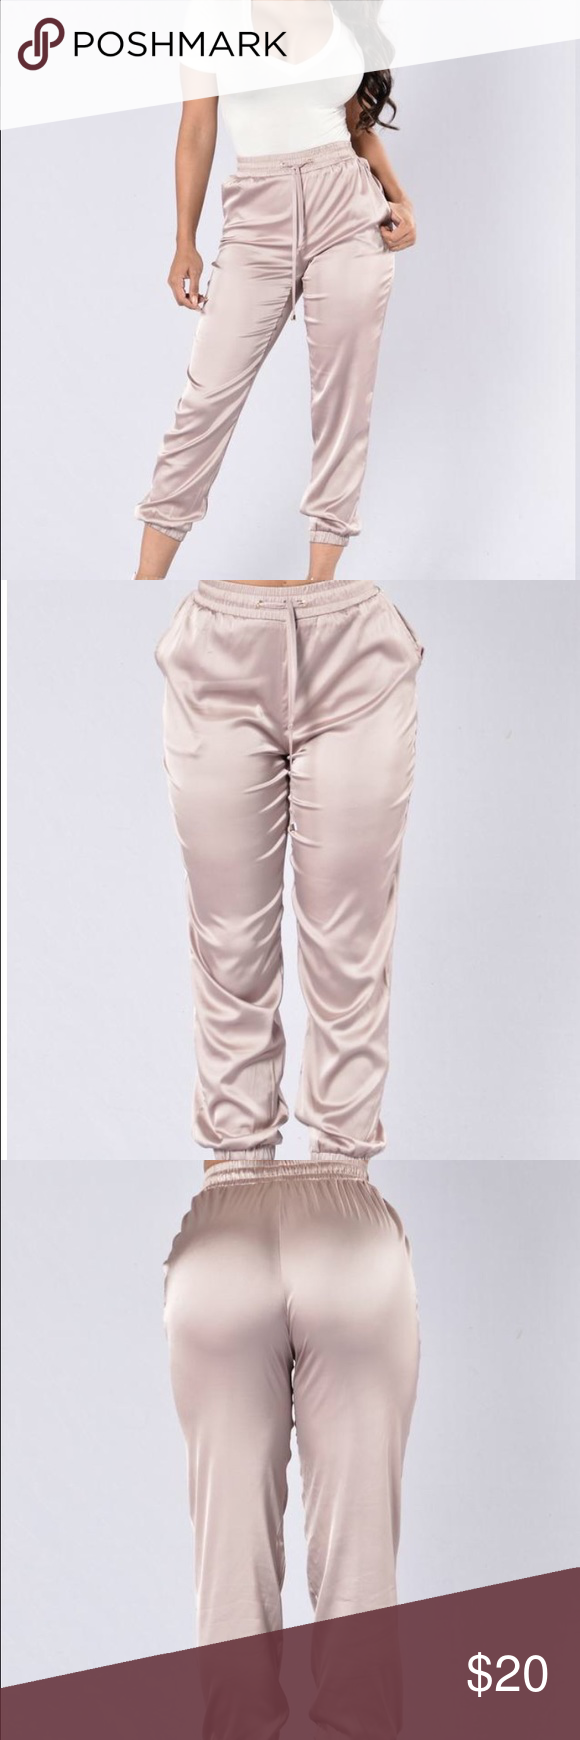 BRAND NEW Genie In A Bottle Pants - Champagne BRAND NEW Genie In A Bottle Pants - Champagne - Medium Satin Jogger Pants Side Pockets Elastic Waist Band with Drawstring Elastic Band Ankle 92% Polyester 8% Spandex Fashion Nova Pants Track Pants & Joggers